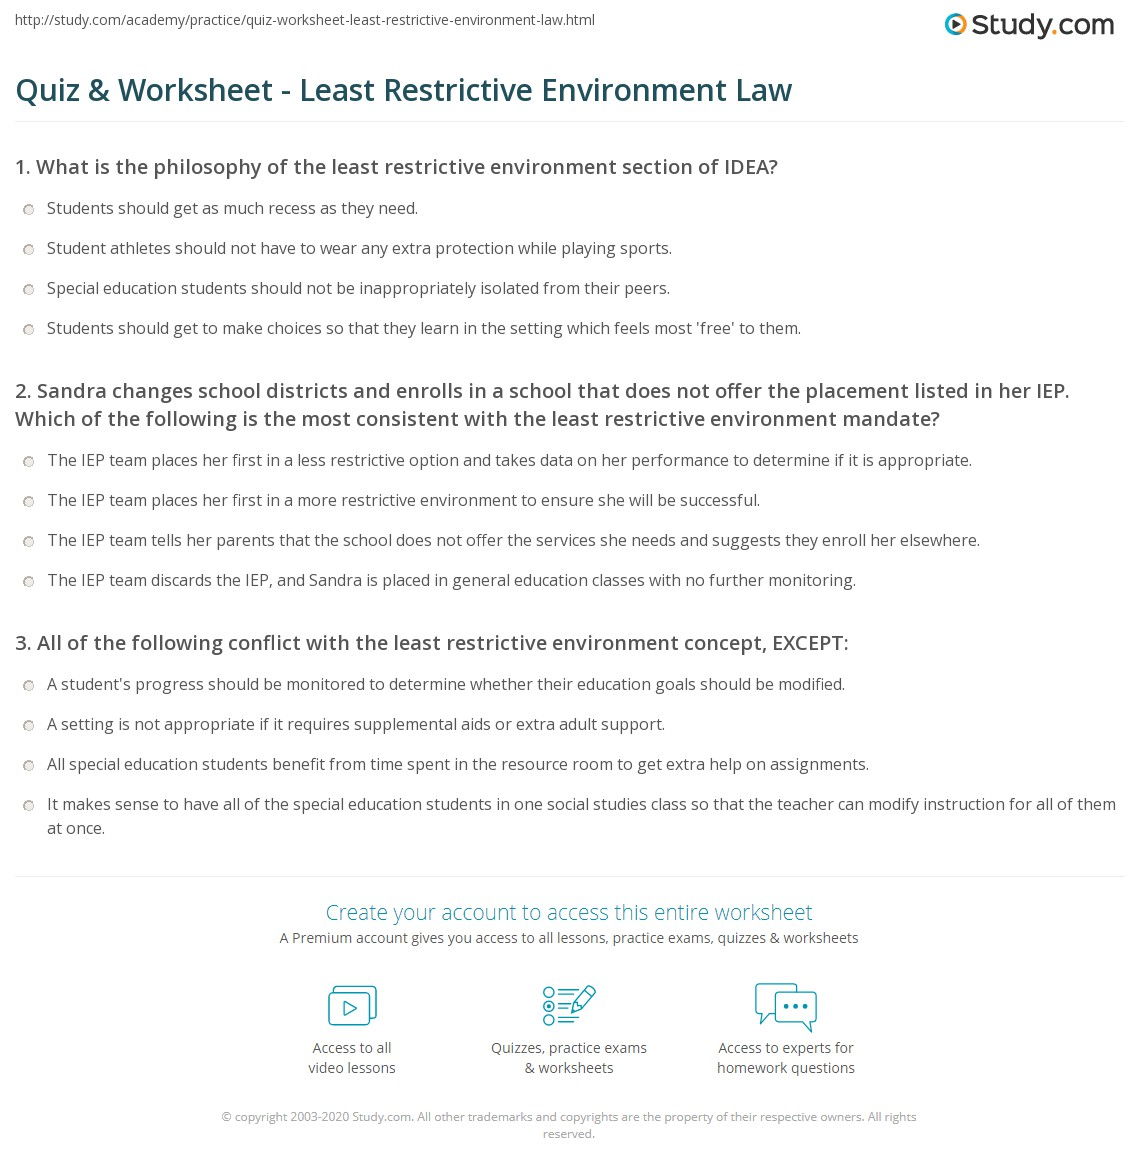 research papers on least restrictive environment